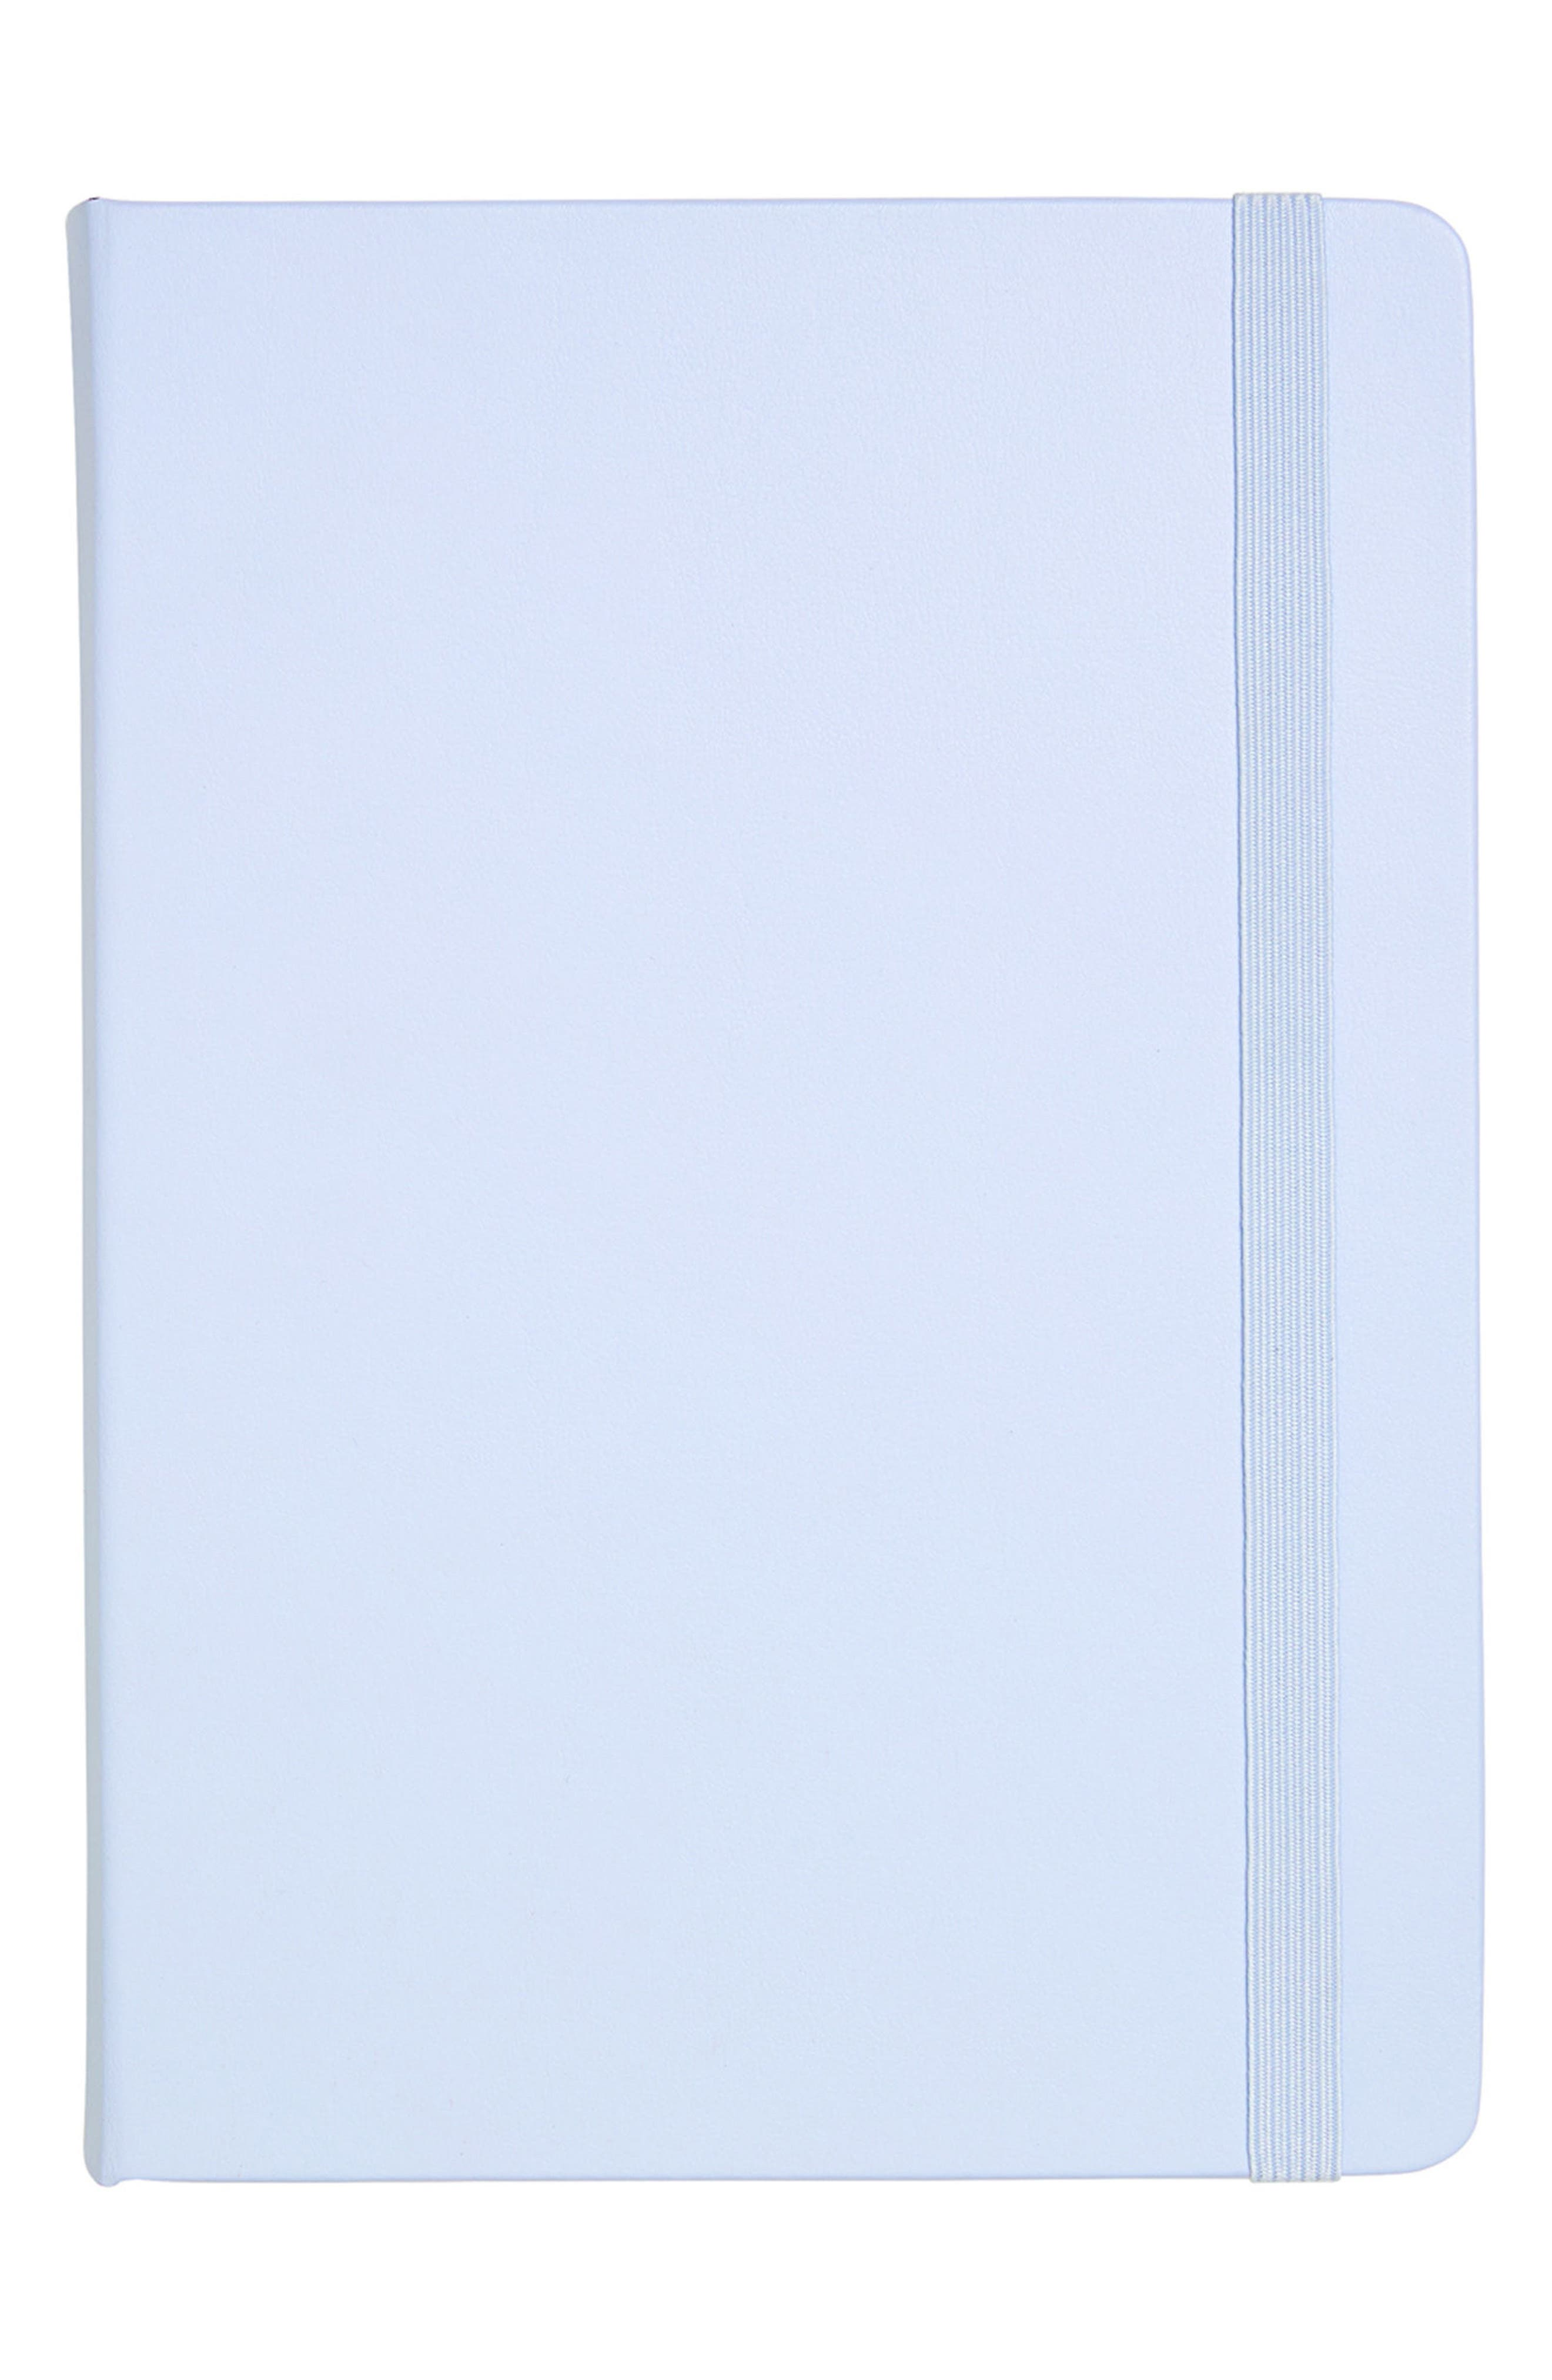 KIKKI.K 'Time is Now' Leather Notebook, Main, color, 400